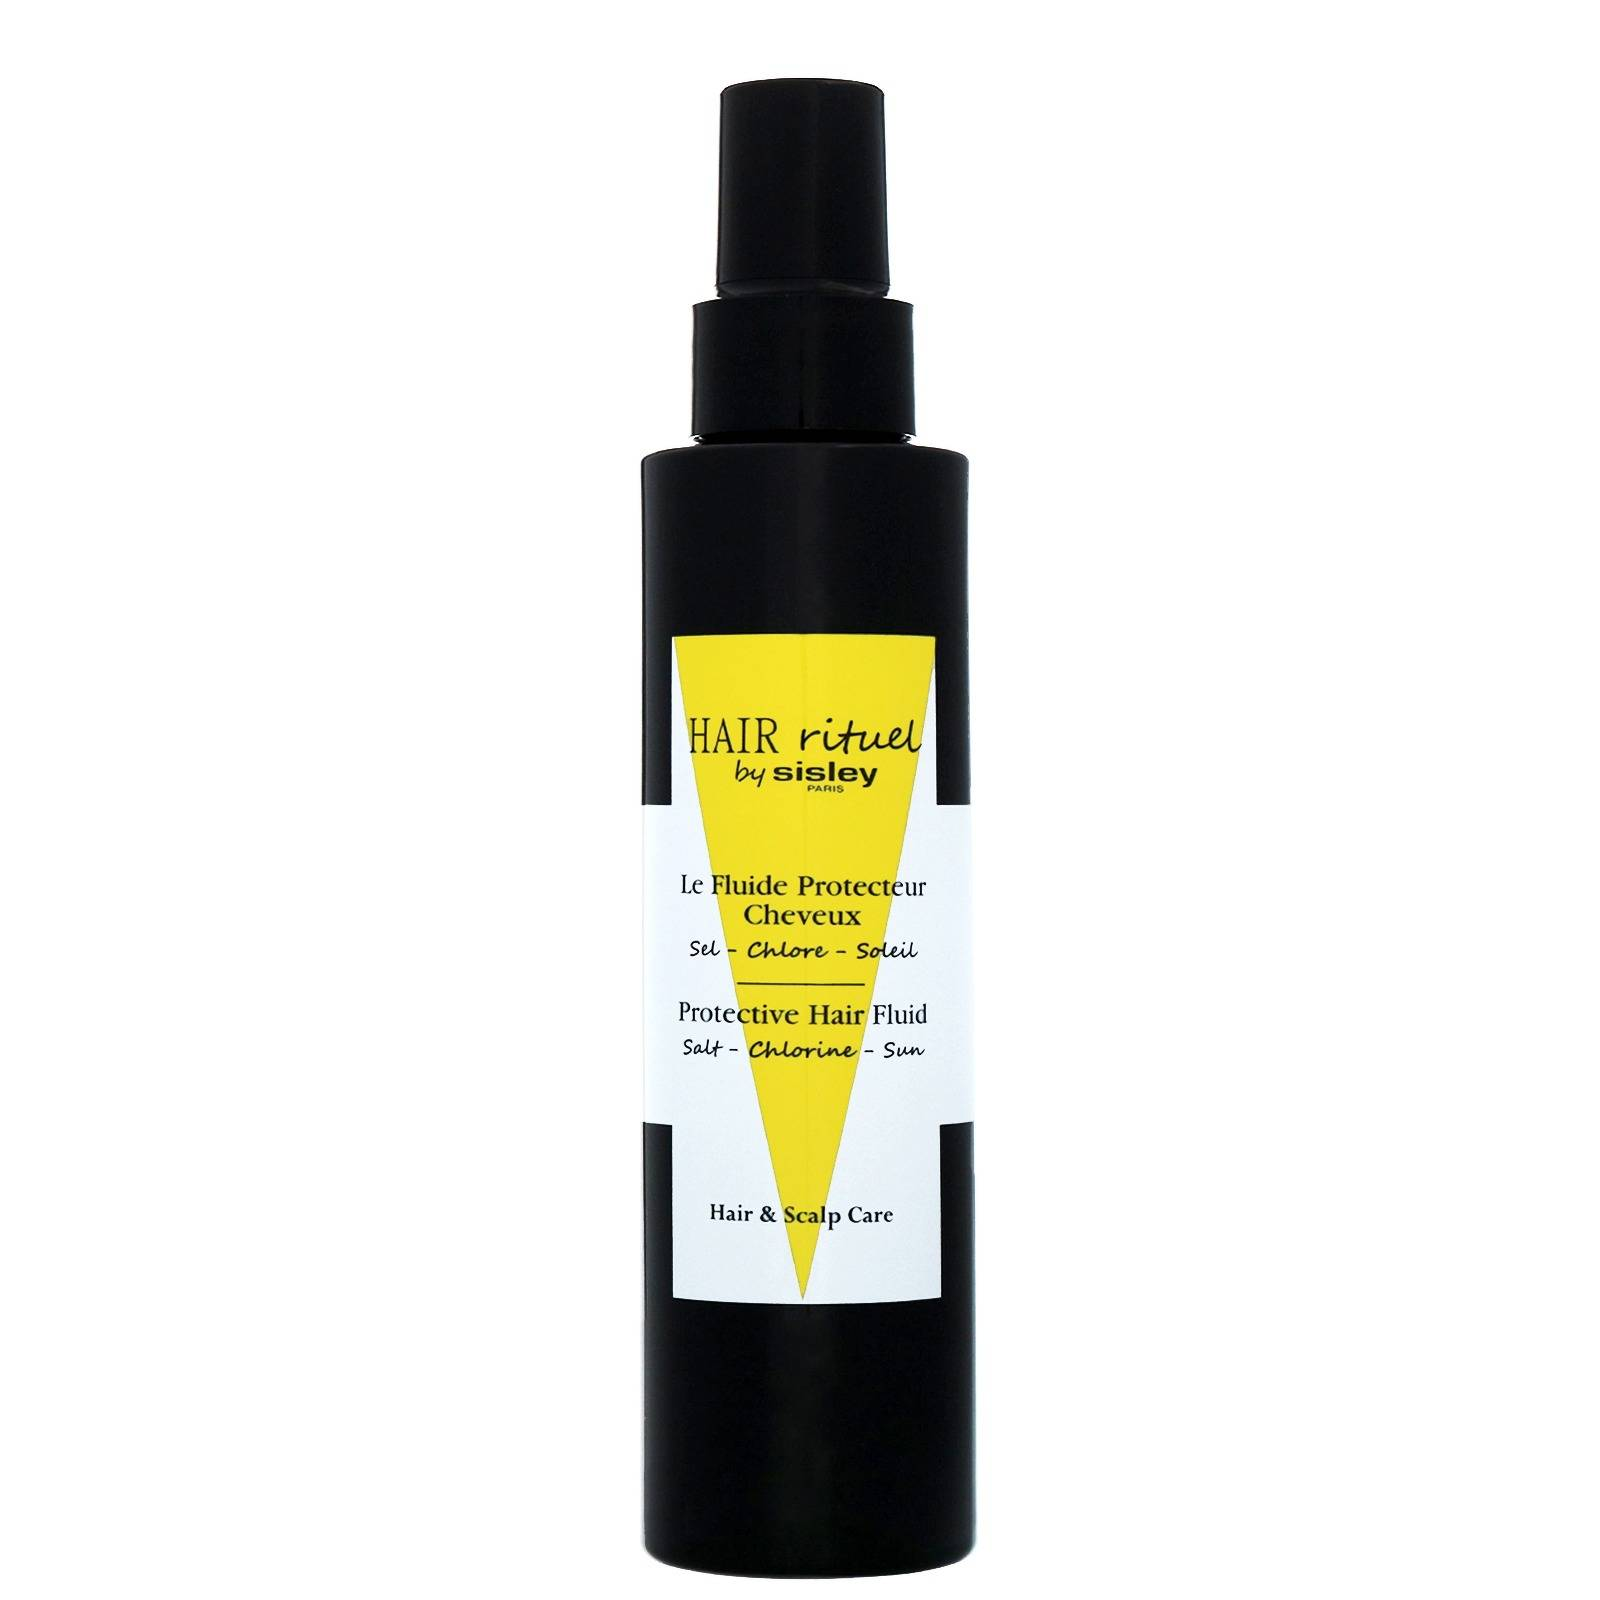 Hair Rituel by Sisley - Styling Protective Hair Fluid 150ml for Women